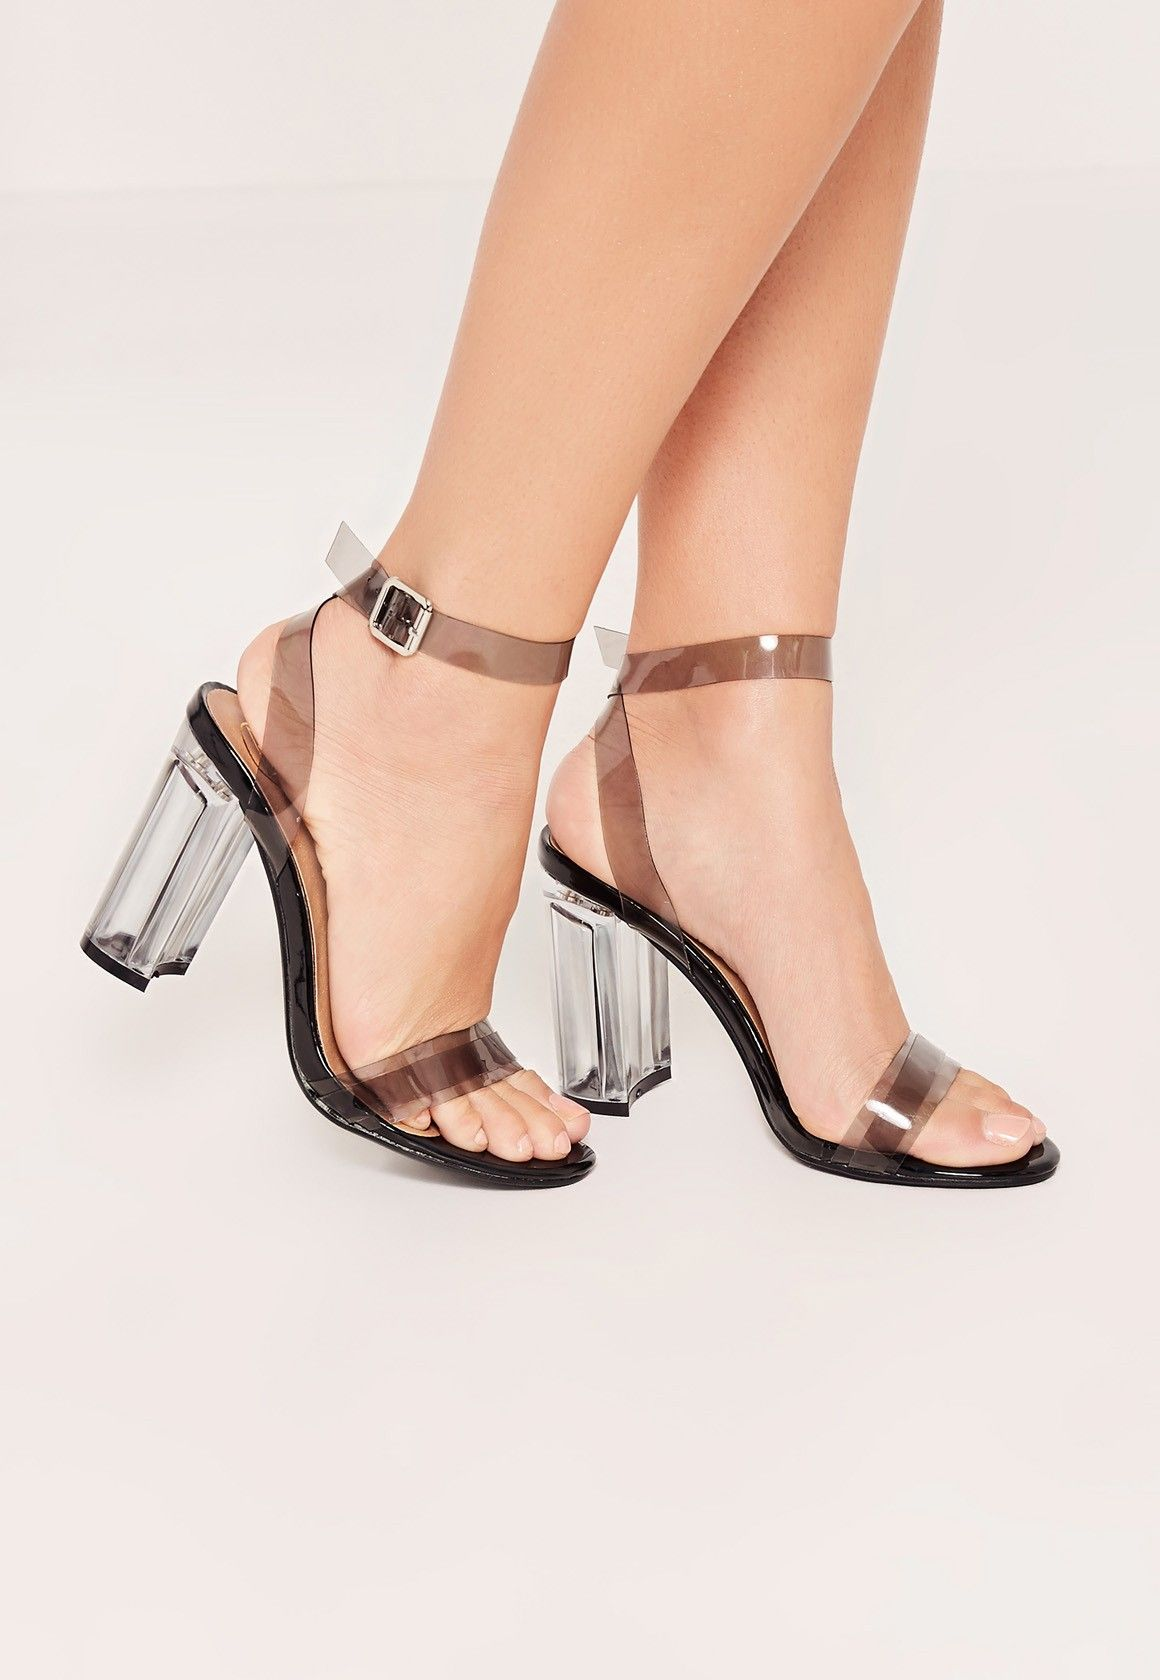 Missguided - Black Perspex Block Heel Barely There Sandals